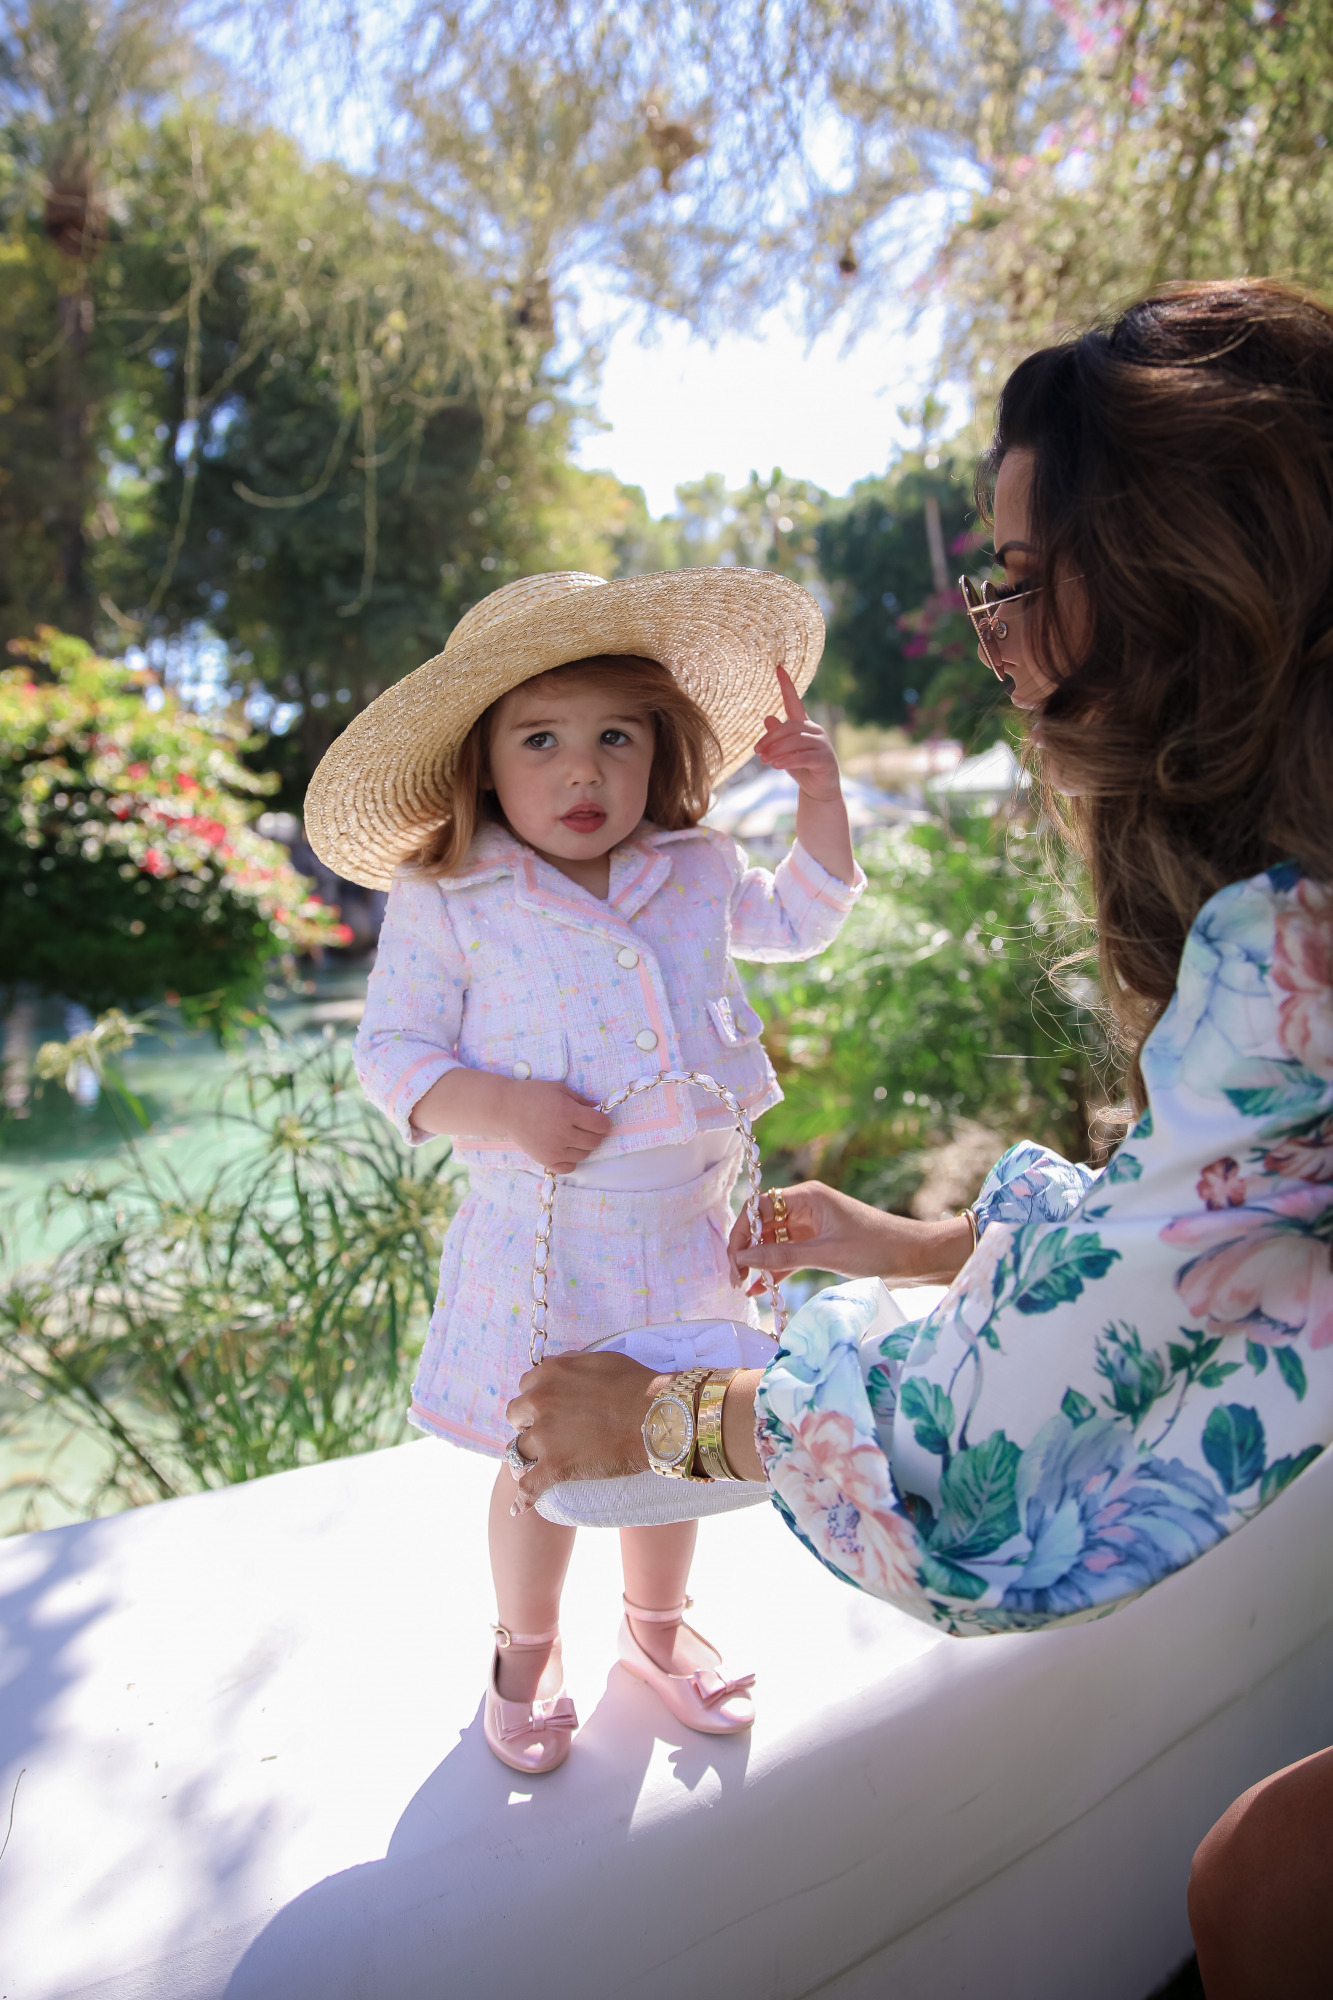 janie and jack easter kids outfits 2021, kids easter outfit ideas toddler, emily gemma, scottsdale fashion blog4 |Spring Outfit Ideas for Kids by popular US fashion blog, The Sweetest Thing: image of a young girl standing outside next to a landscaped pond and wearing aPink Boucle Jacket, Pink Boucle Shorts, Pink Bow Flats, White Purse, and Straw Sun Hat.